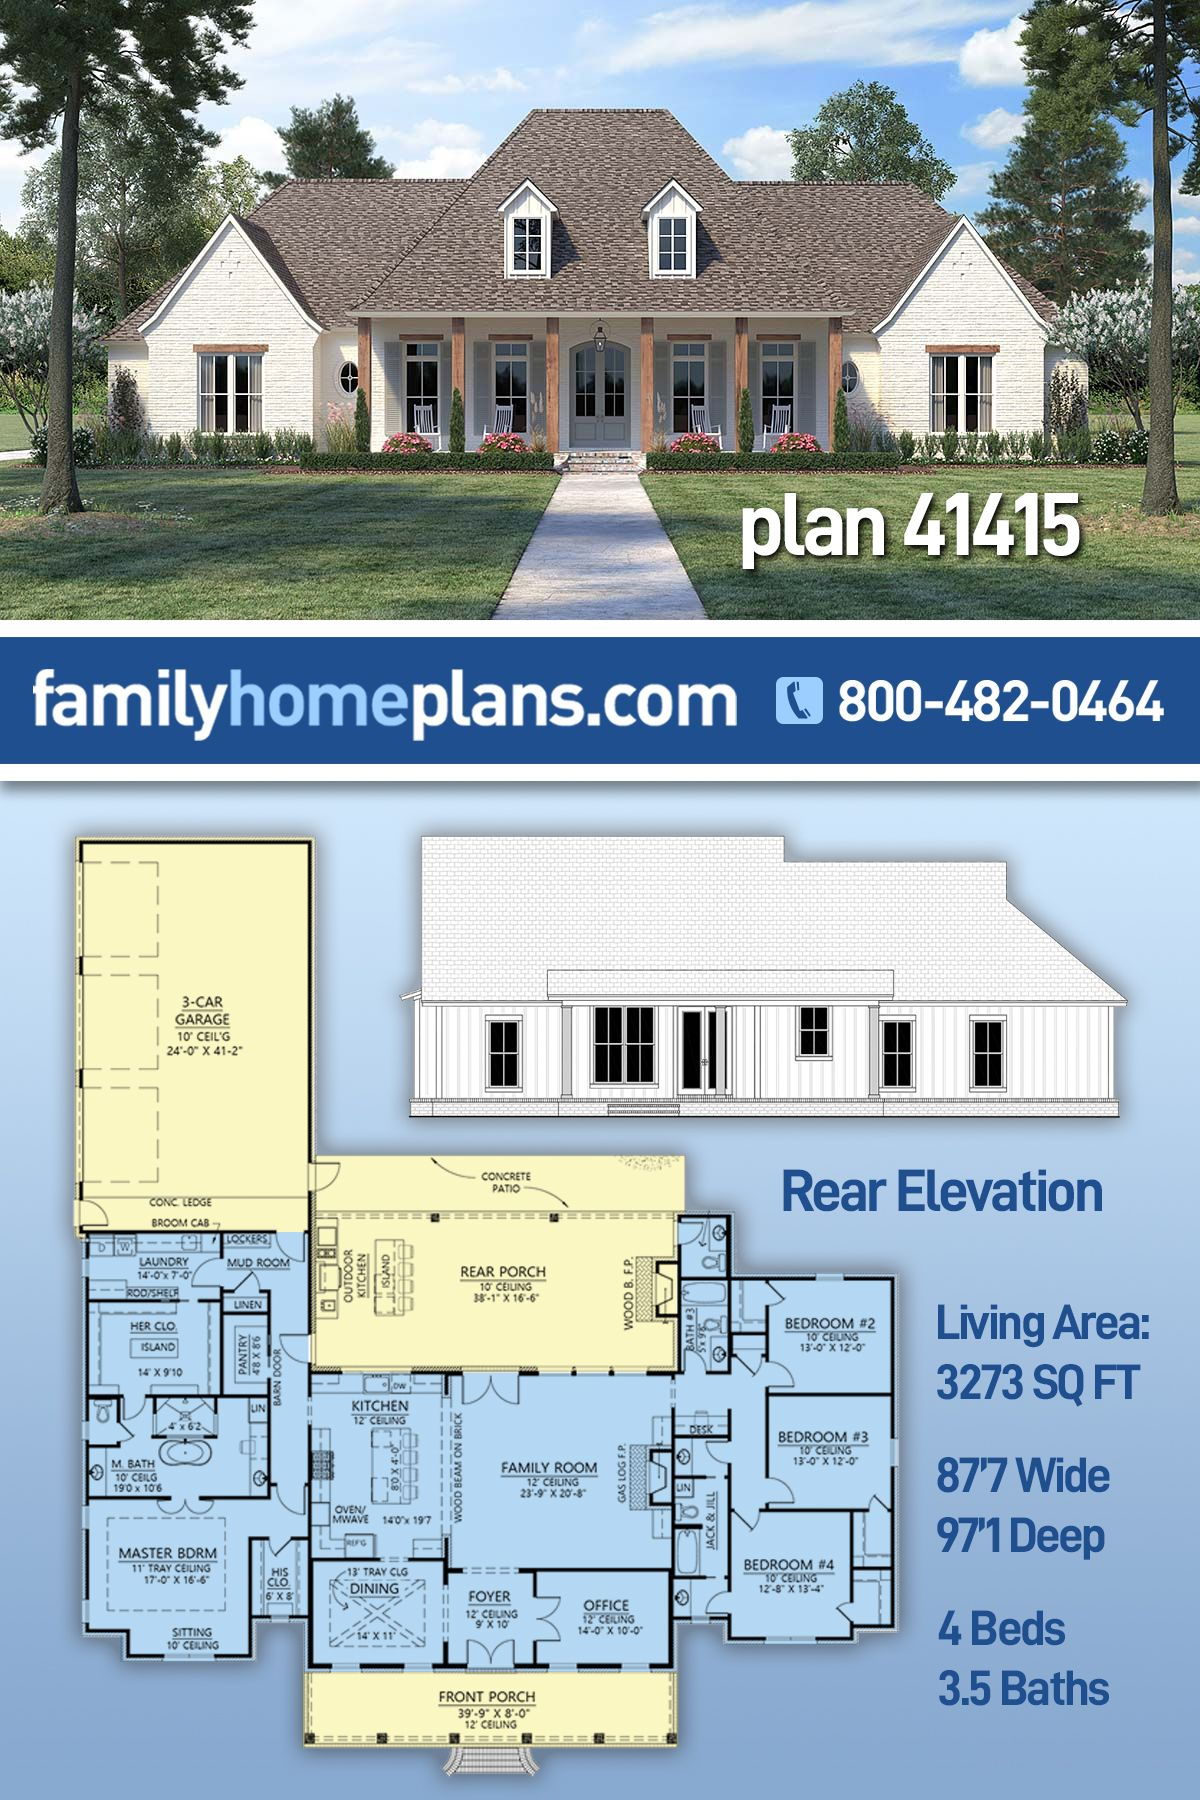 French Country Style House Plan 41415 With 4 Bed 4 Bath 3 Car Garage Country Style House Plans French Country House Plans Country House Plans